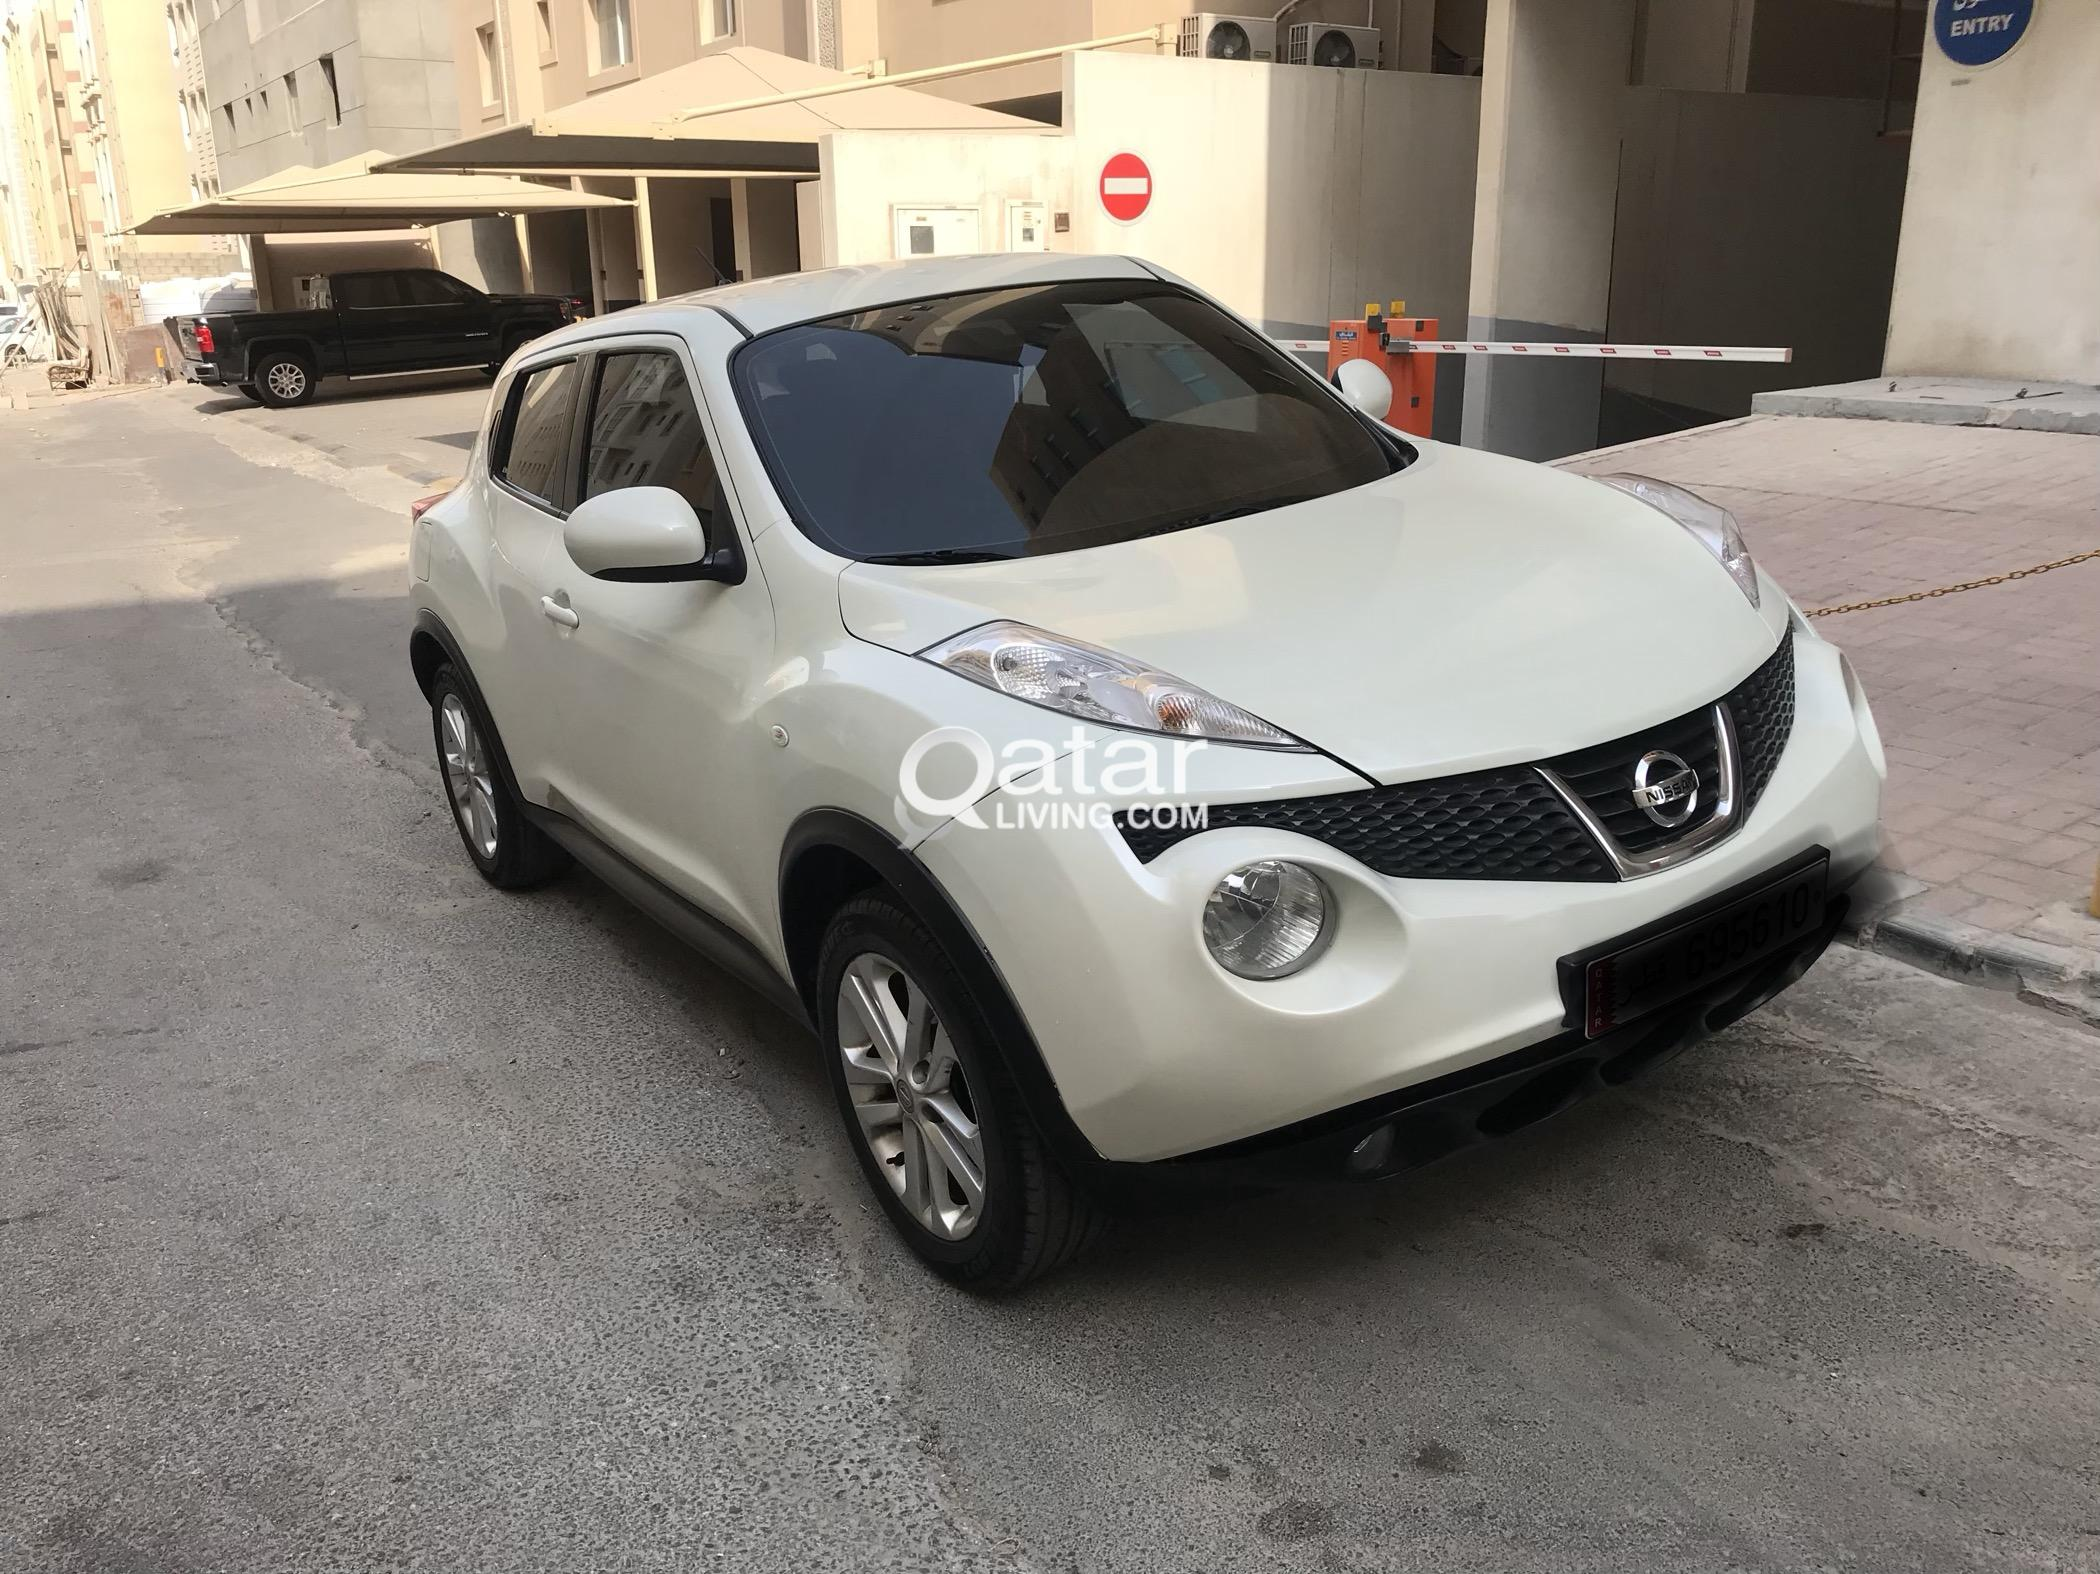 Pearl White Nissan Juke Very Low Kms! Excellent Condition | Qatar Living